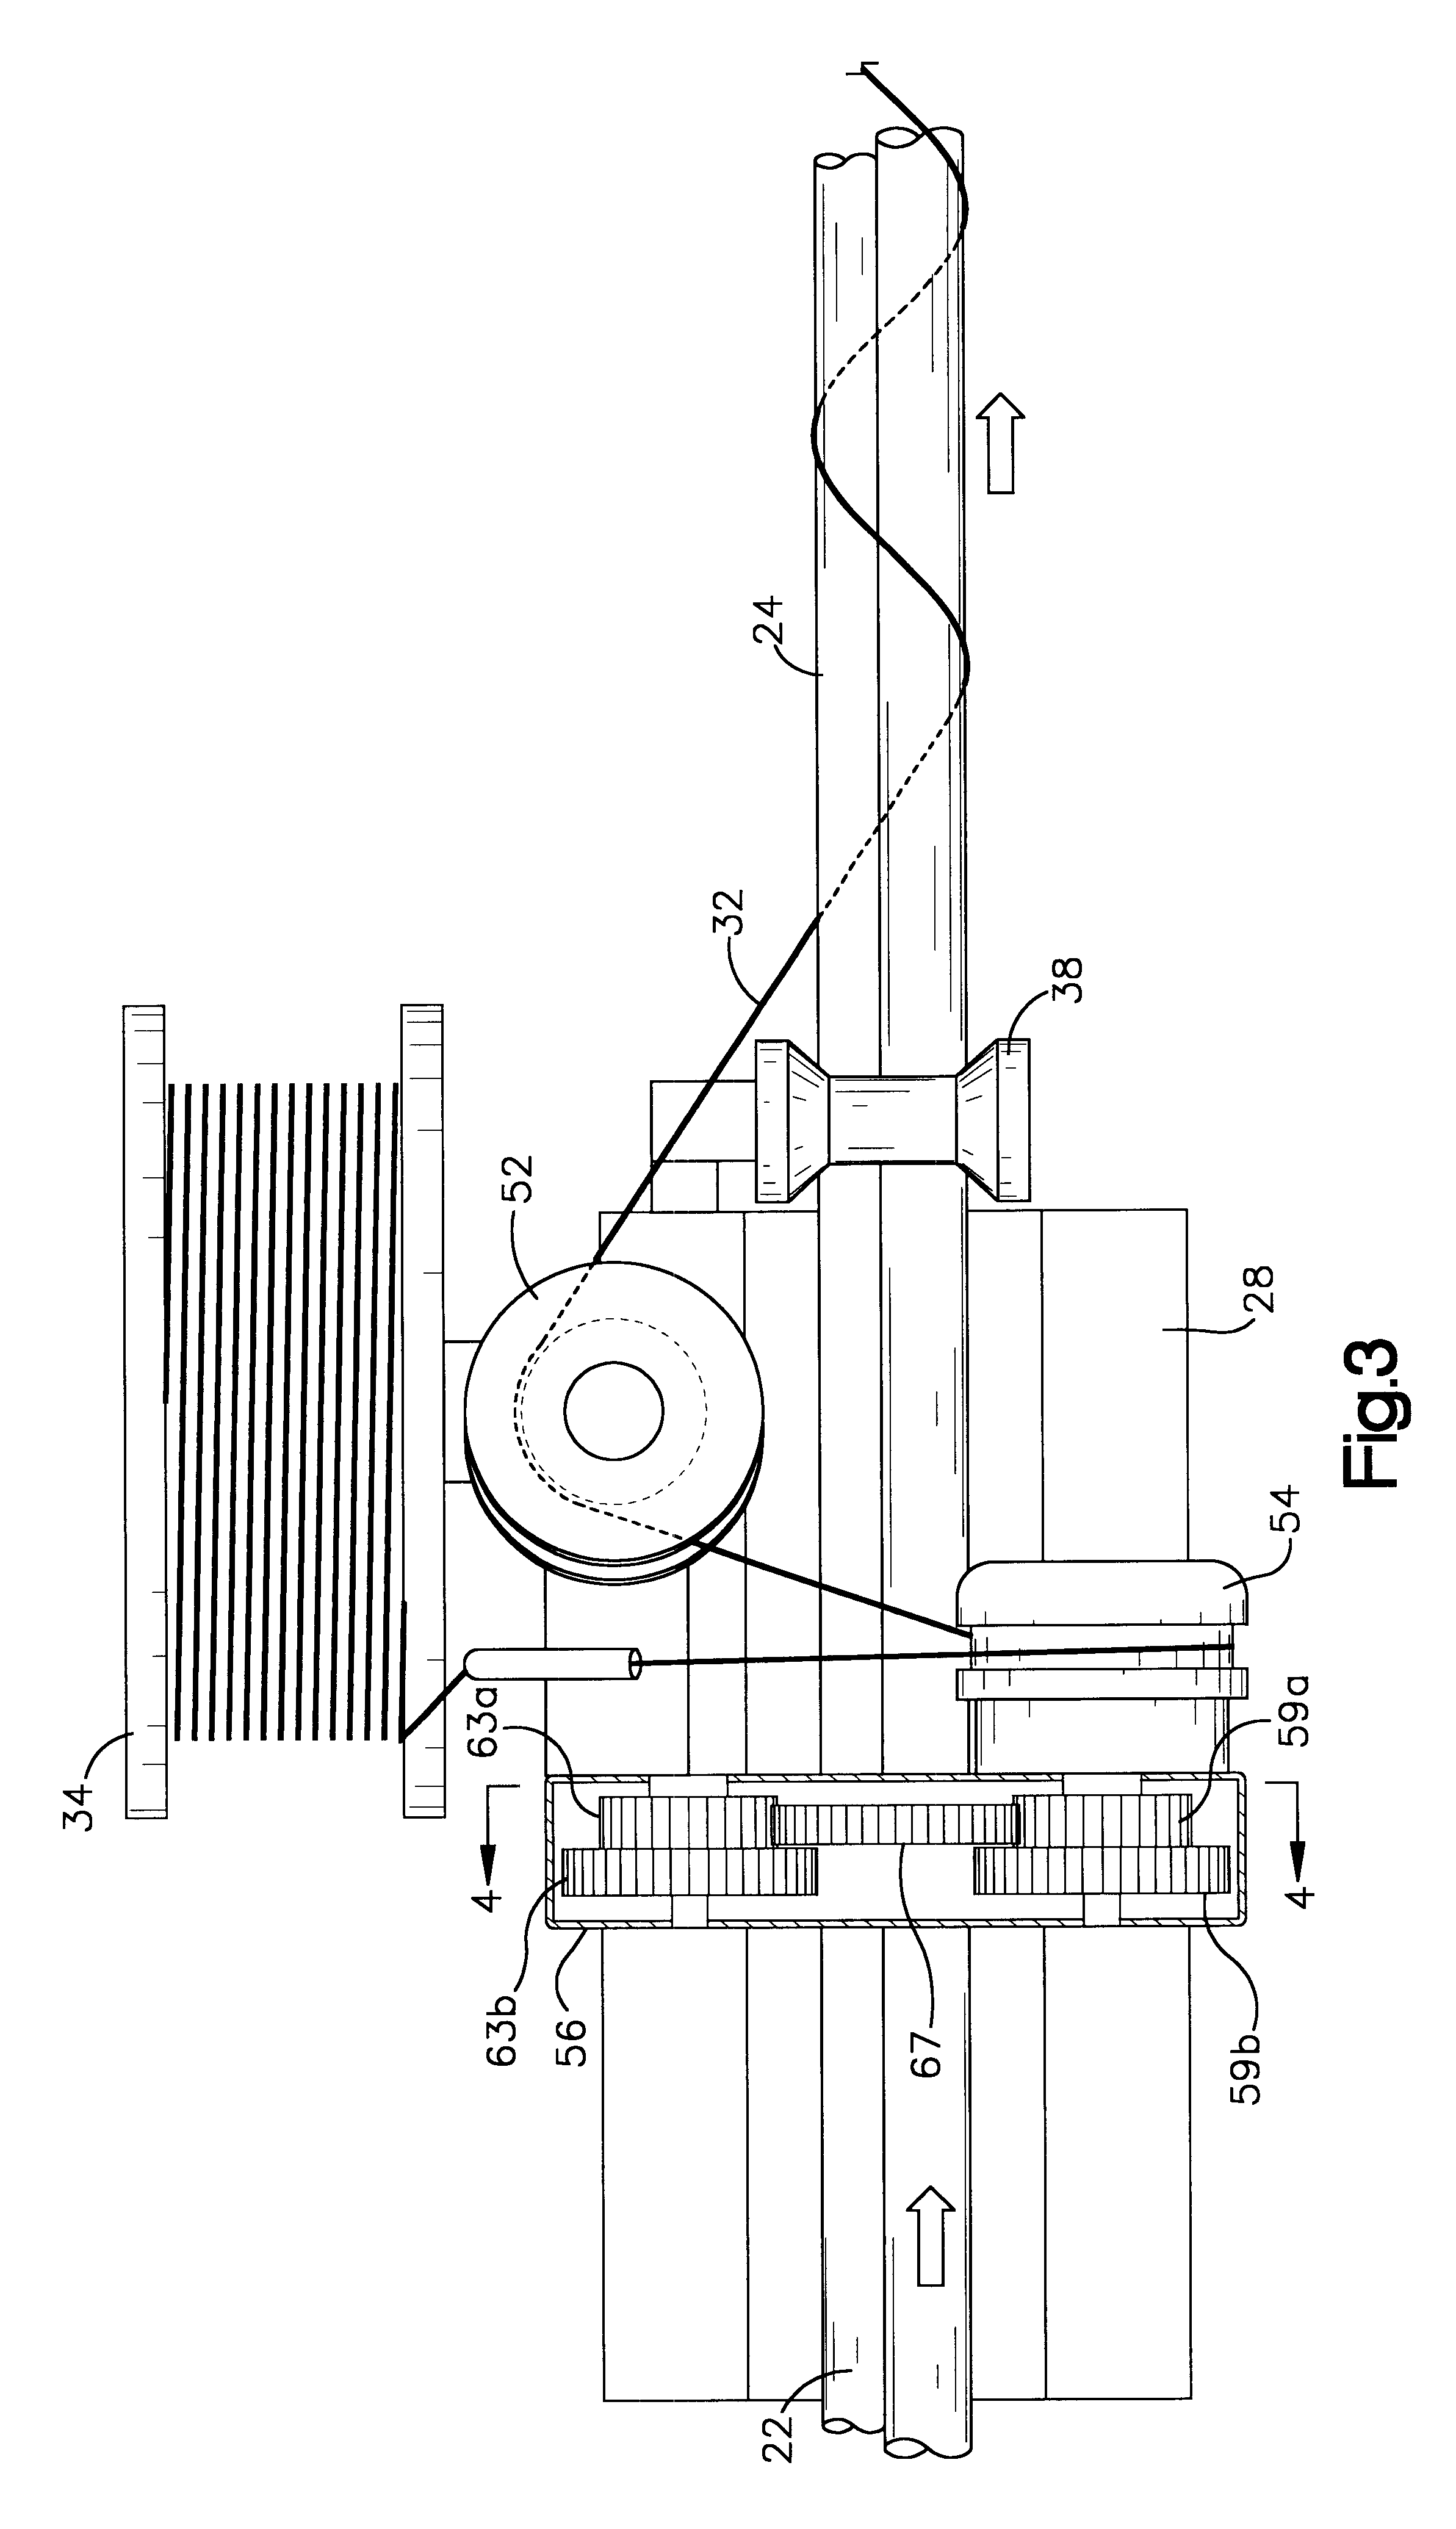 Apparatus And Method For Installing Cable : Patent us method and apparatus for wrapping